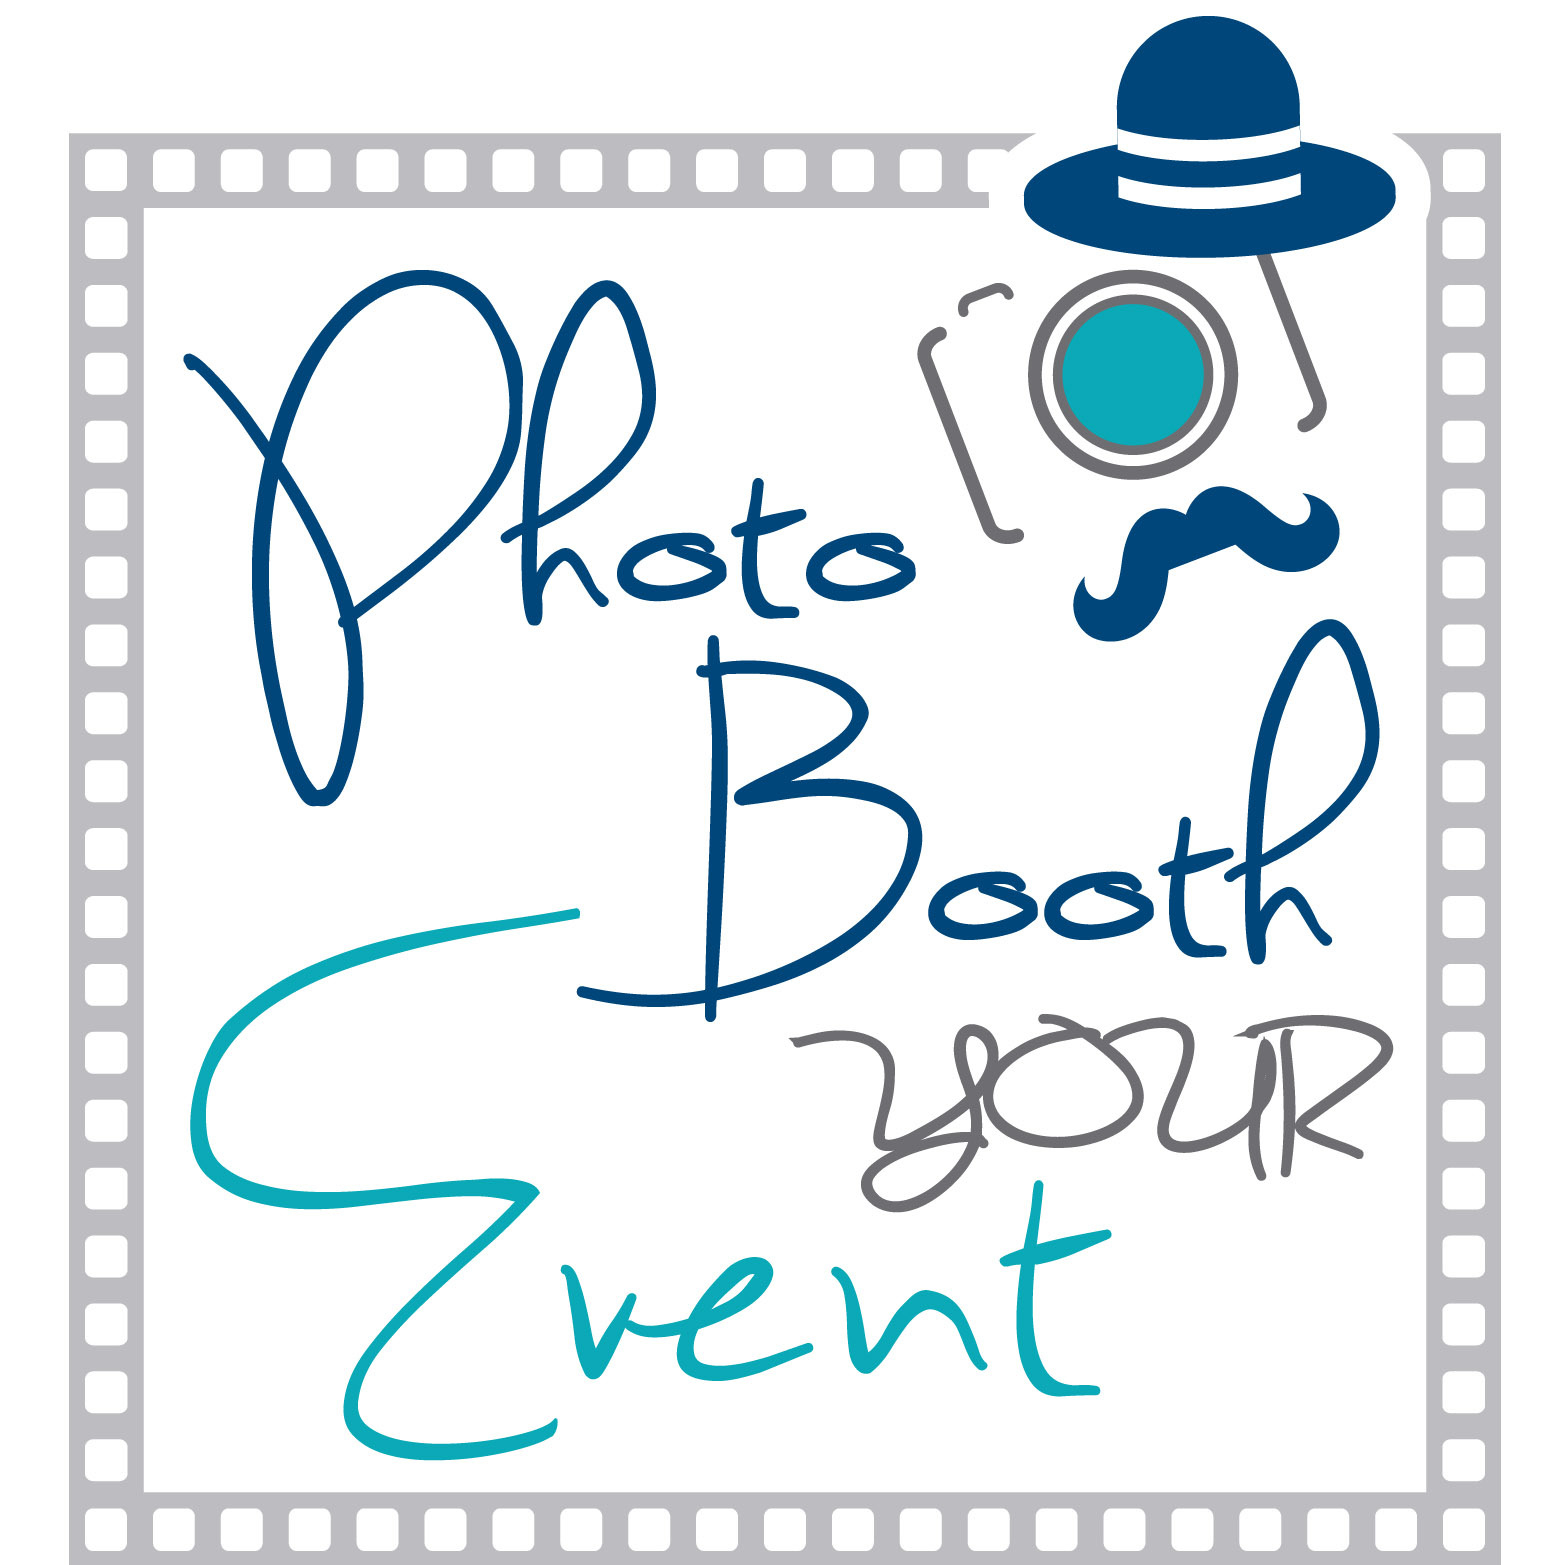 Photo Booth Your Event